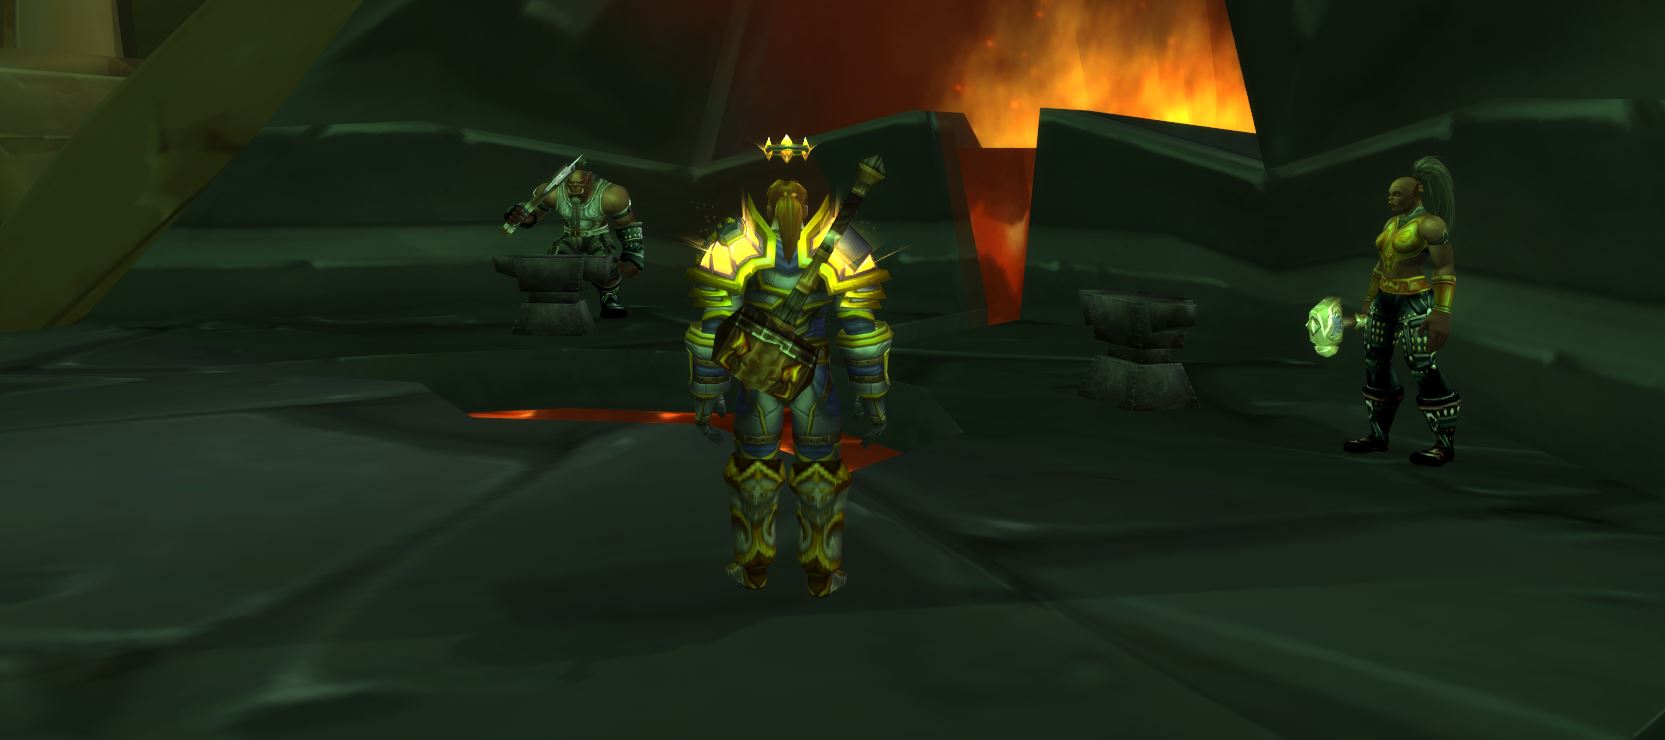 tbc classic pve retribution paladin best professions burning crusade classic